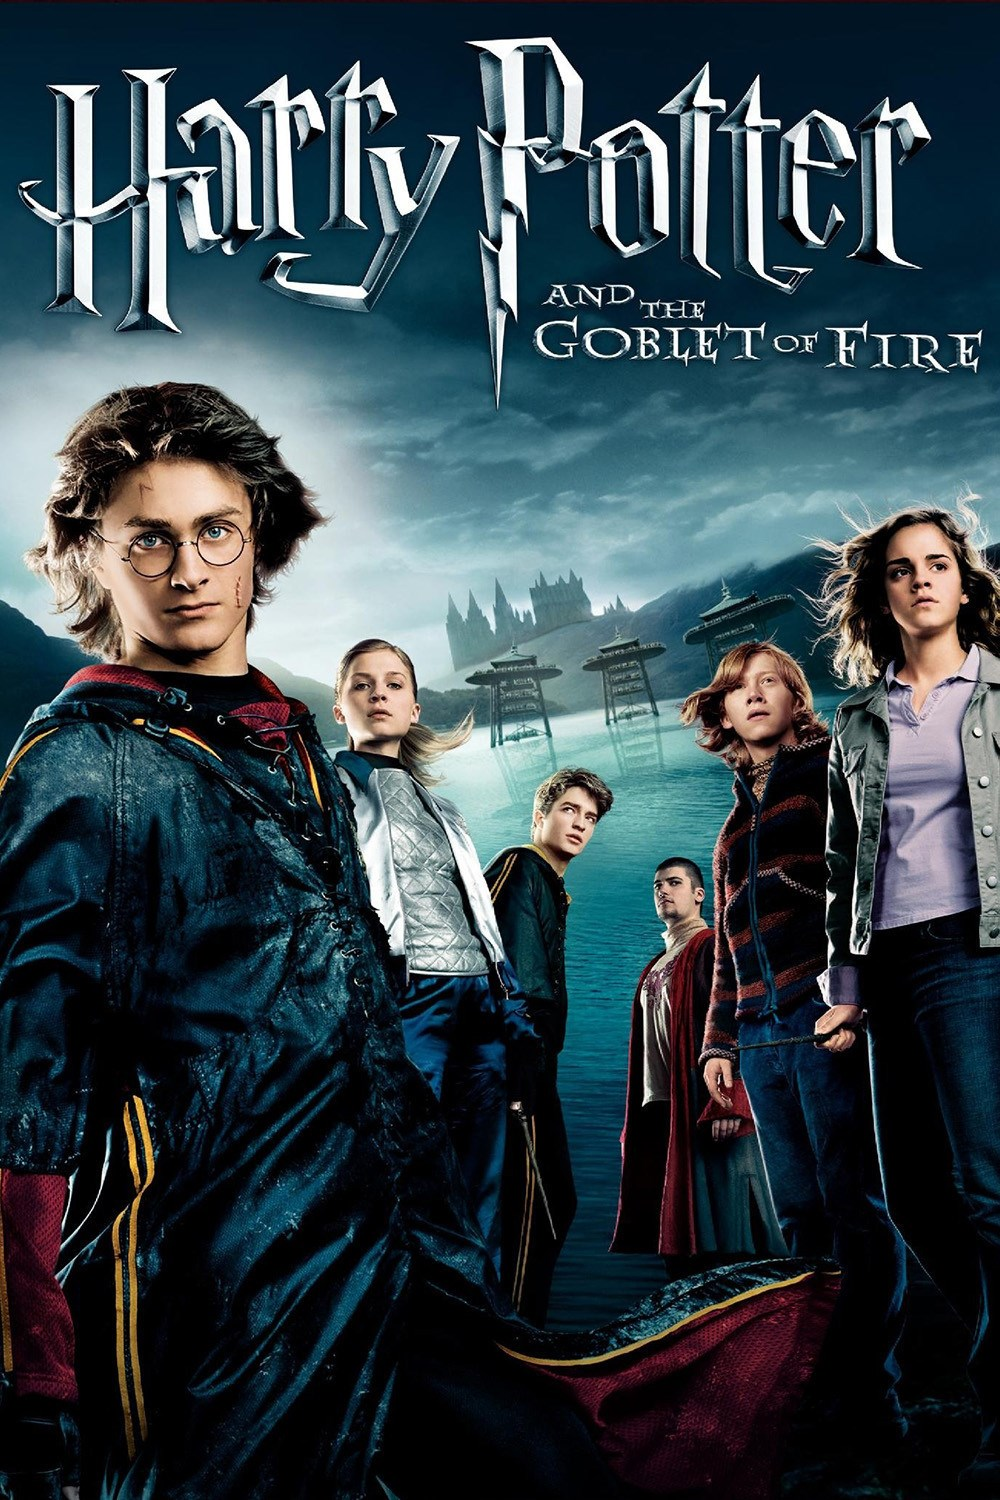 Download Harry Potter 3 Sub Indo : download, harry, potter, Download, Harry, Potter, Skinfasr